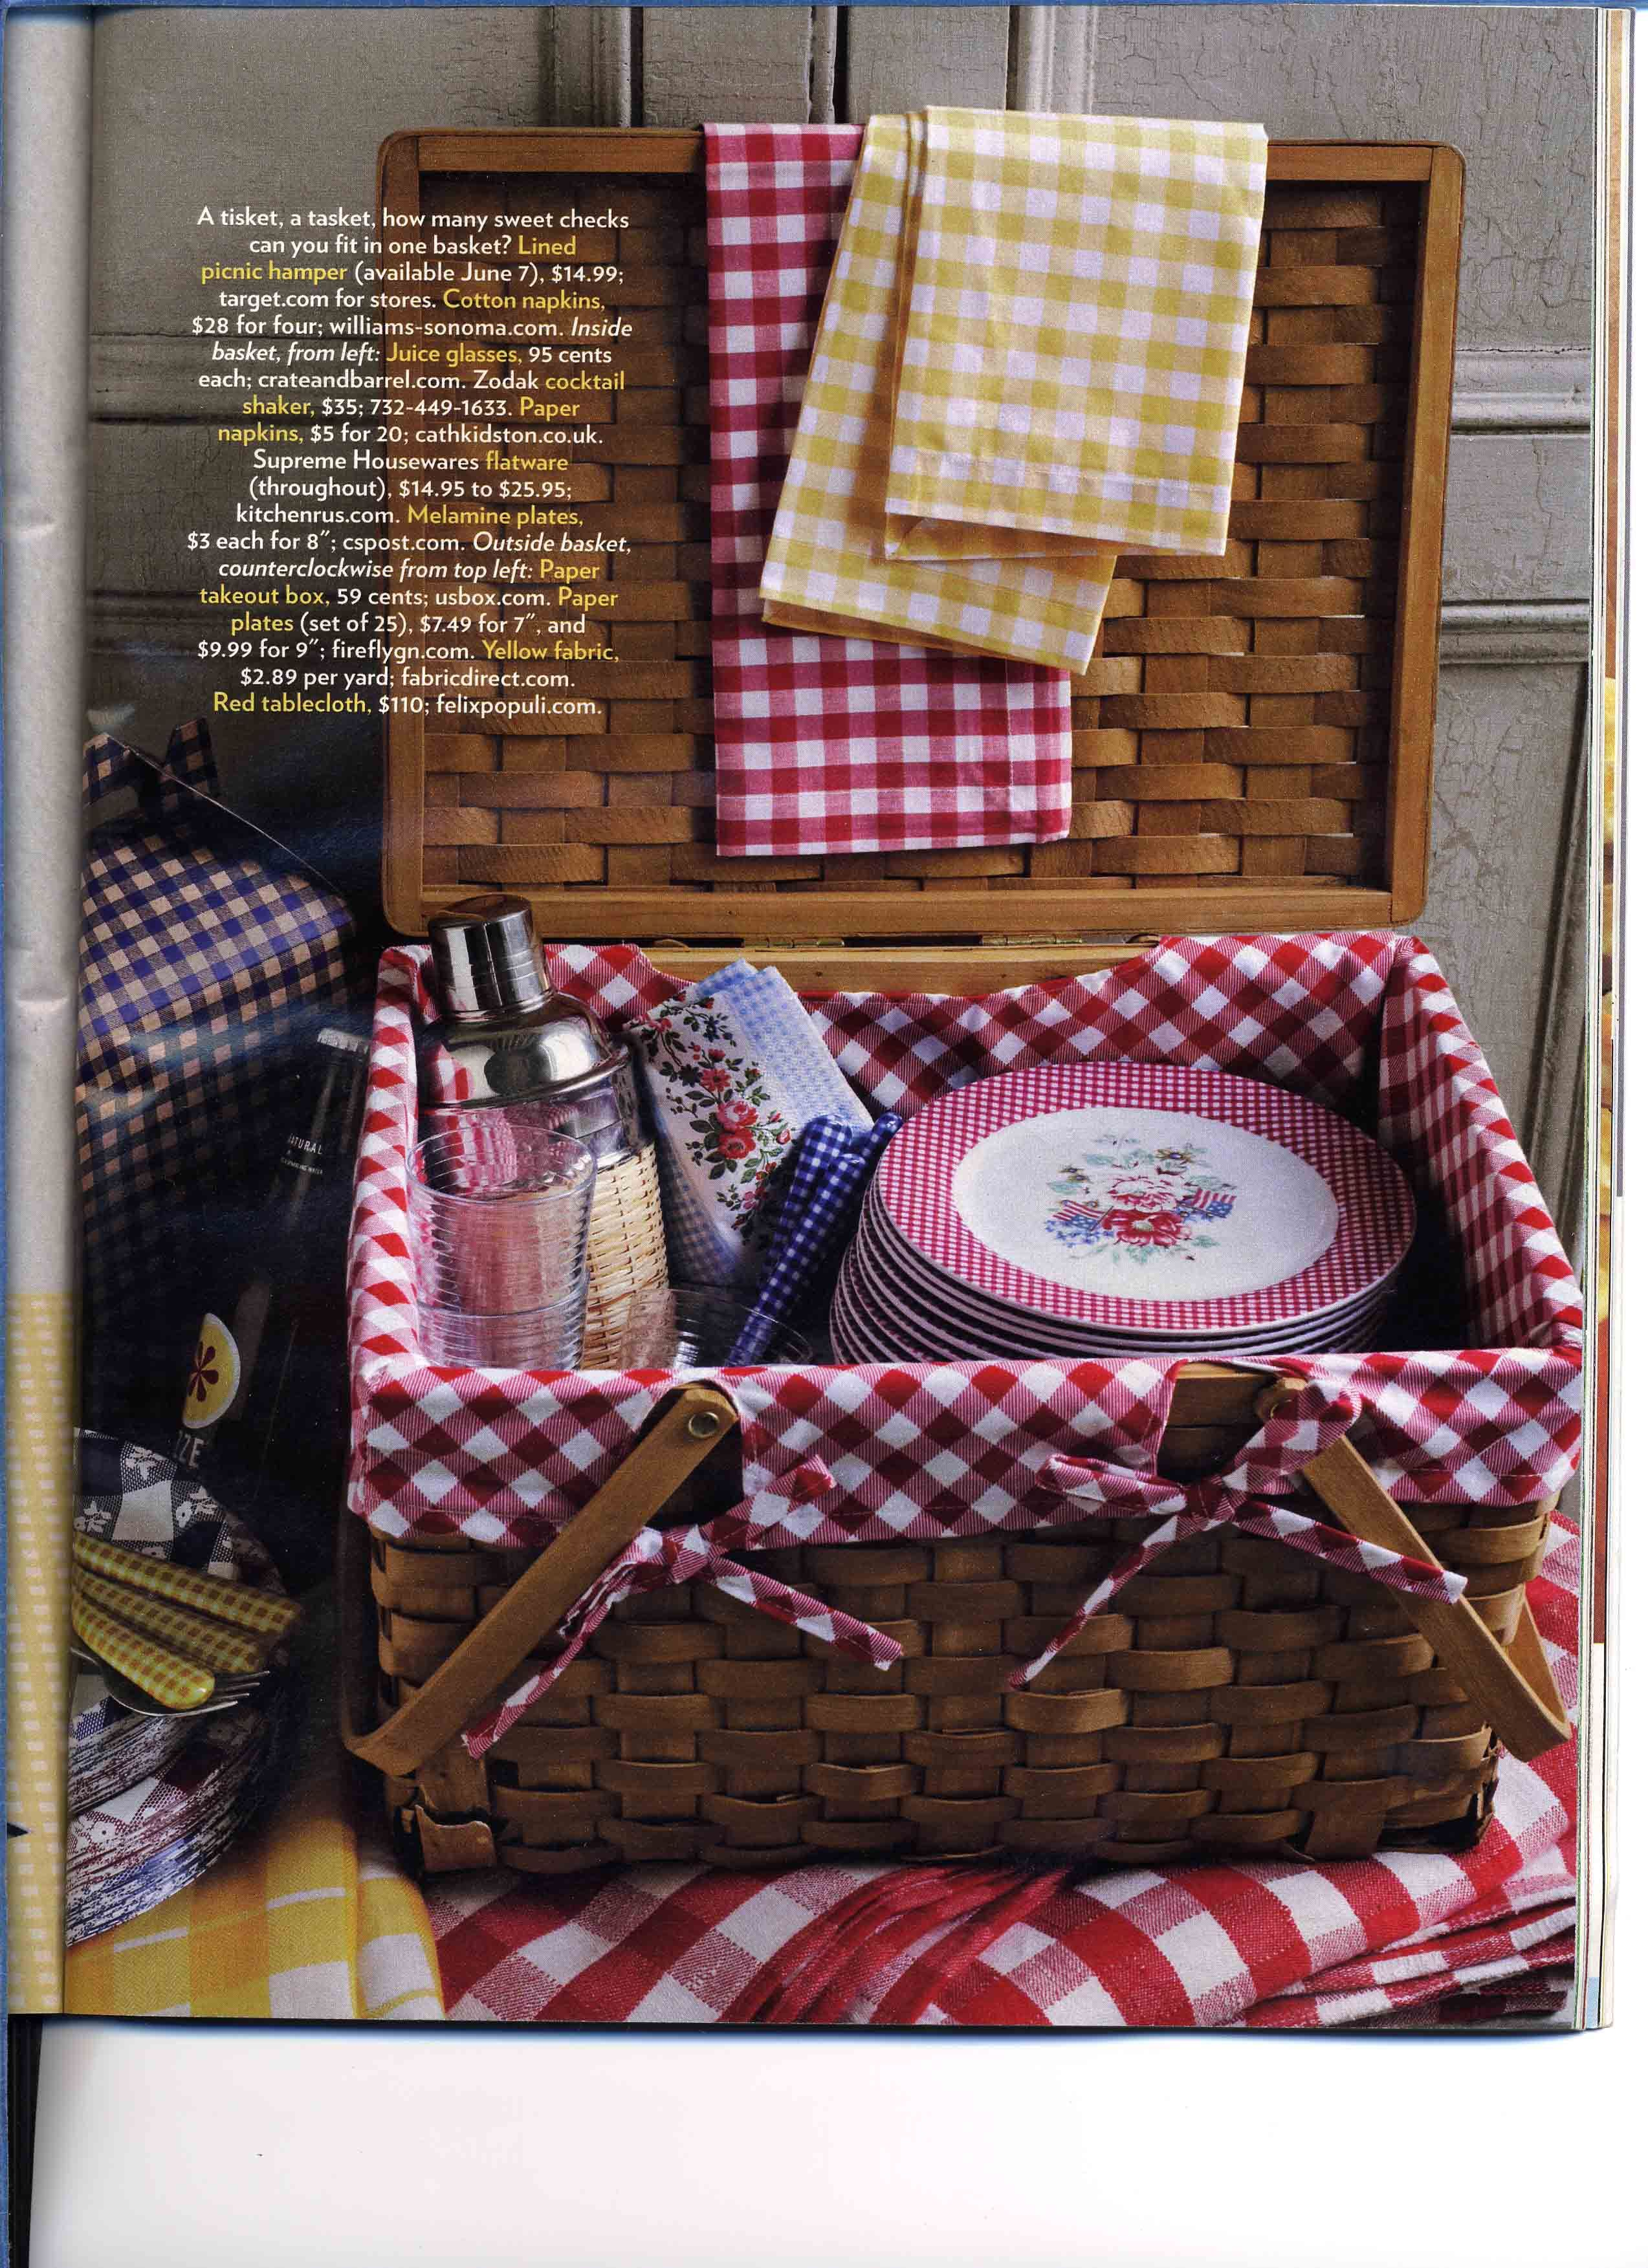 Suzanna's got some picnic baskets we can use for interesting containers for silverware, hand fans, favors, anything!